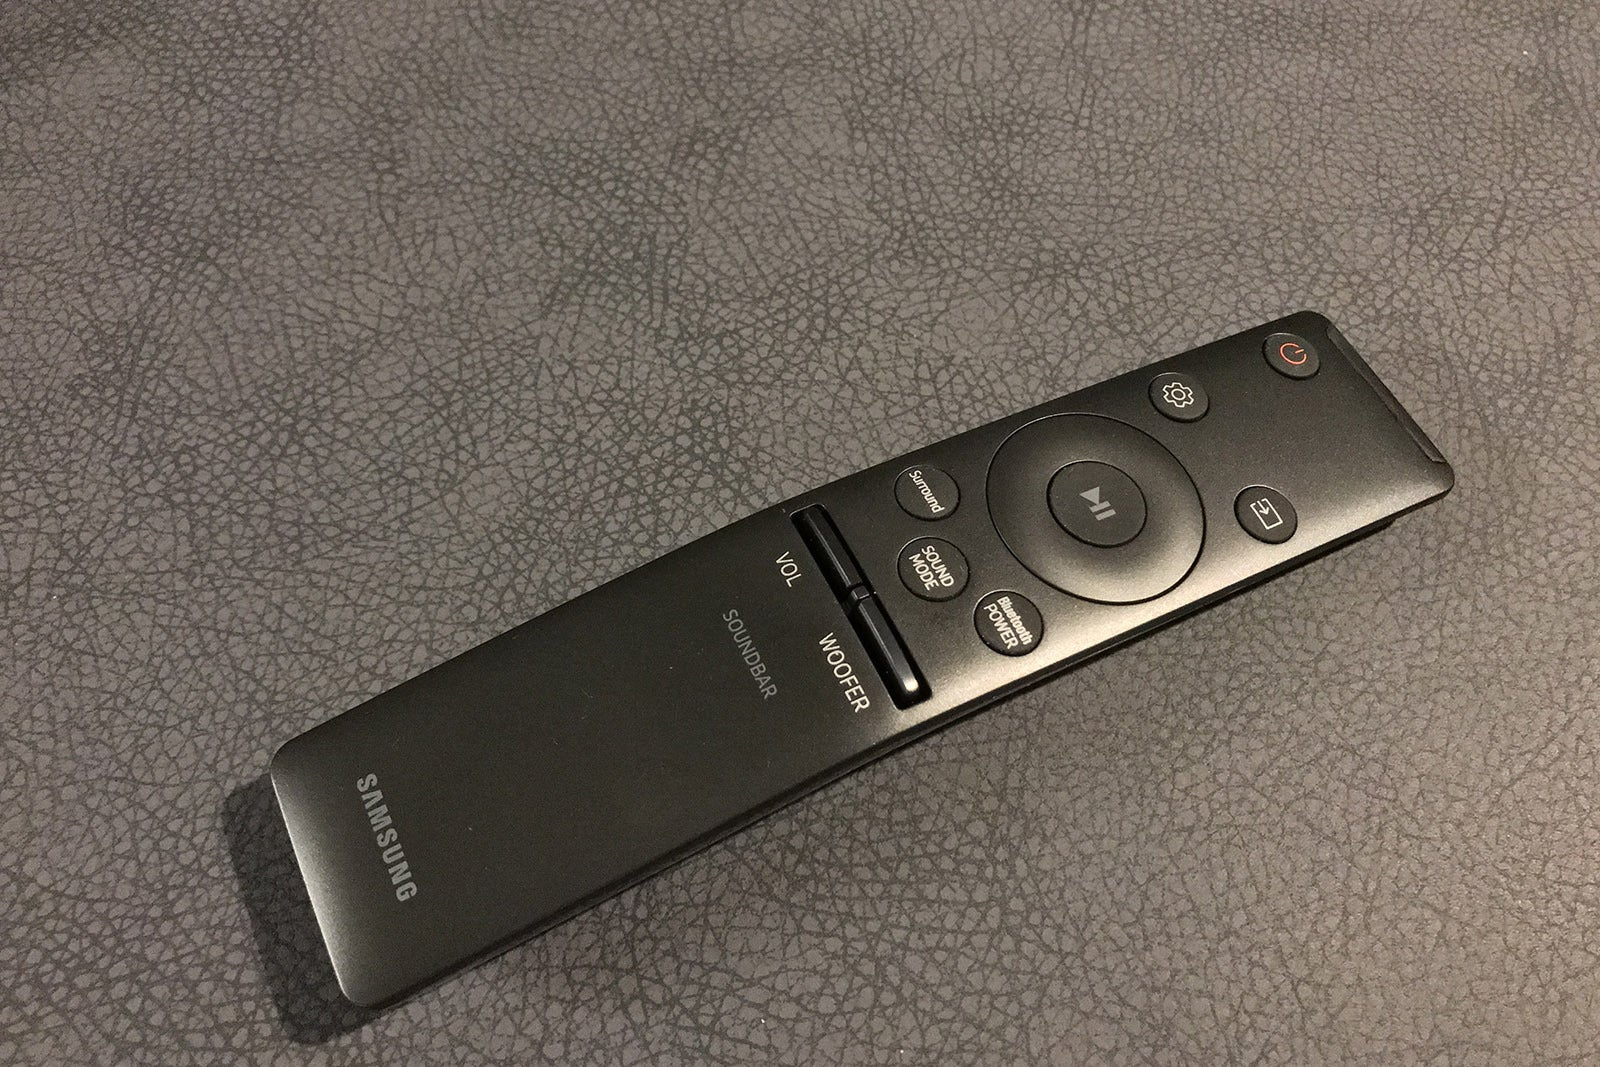 The Wireless Remote Control System Has One Mode T You Samsung Hw M450 Soundbar Review Techhive Theo Nicolakis Idg Includes An Excellent With